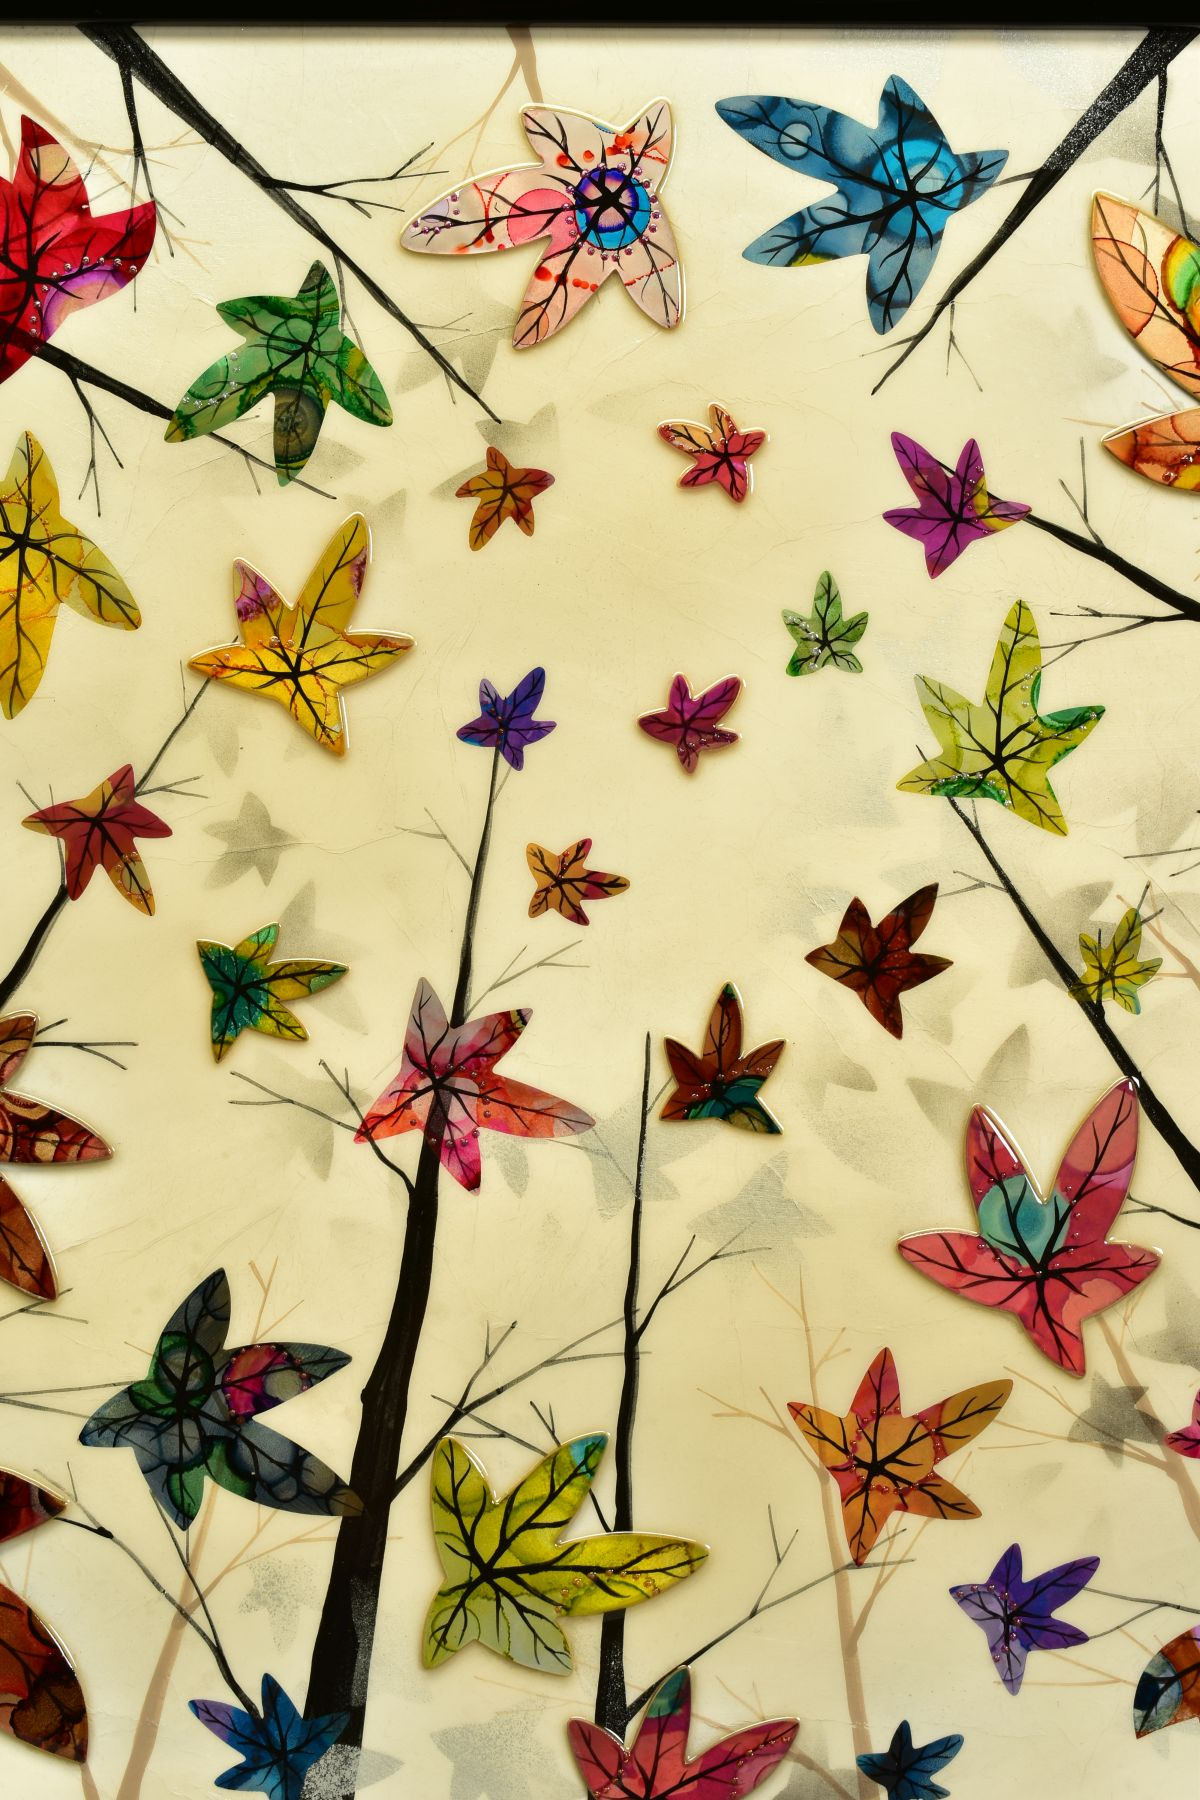 CHLOE NUGENT (BRITISH CONTEMPORARY), 'Woodland Jewels VI', colourful leaves falling from trees, - Image 2 of 6